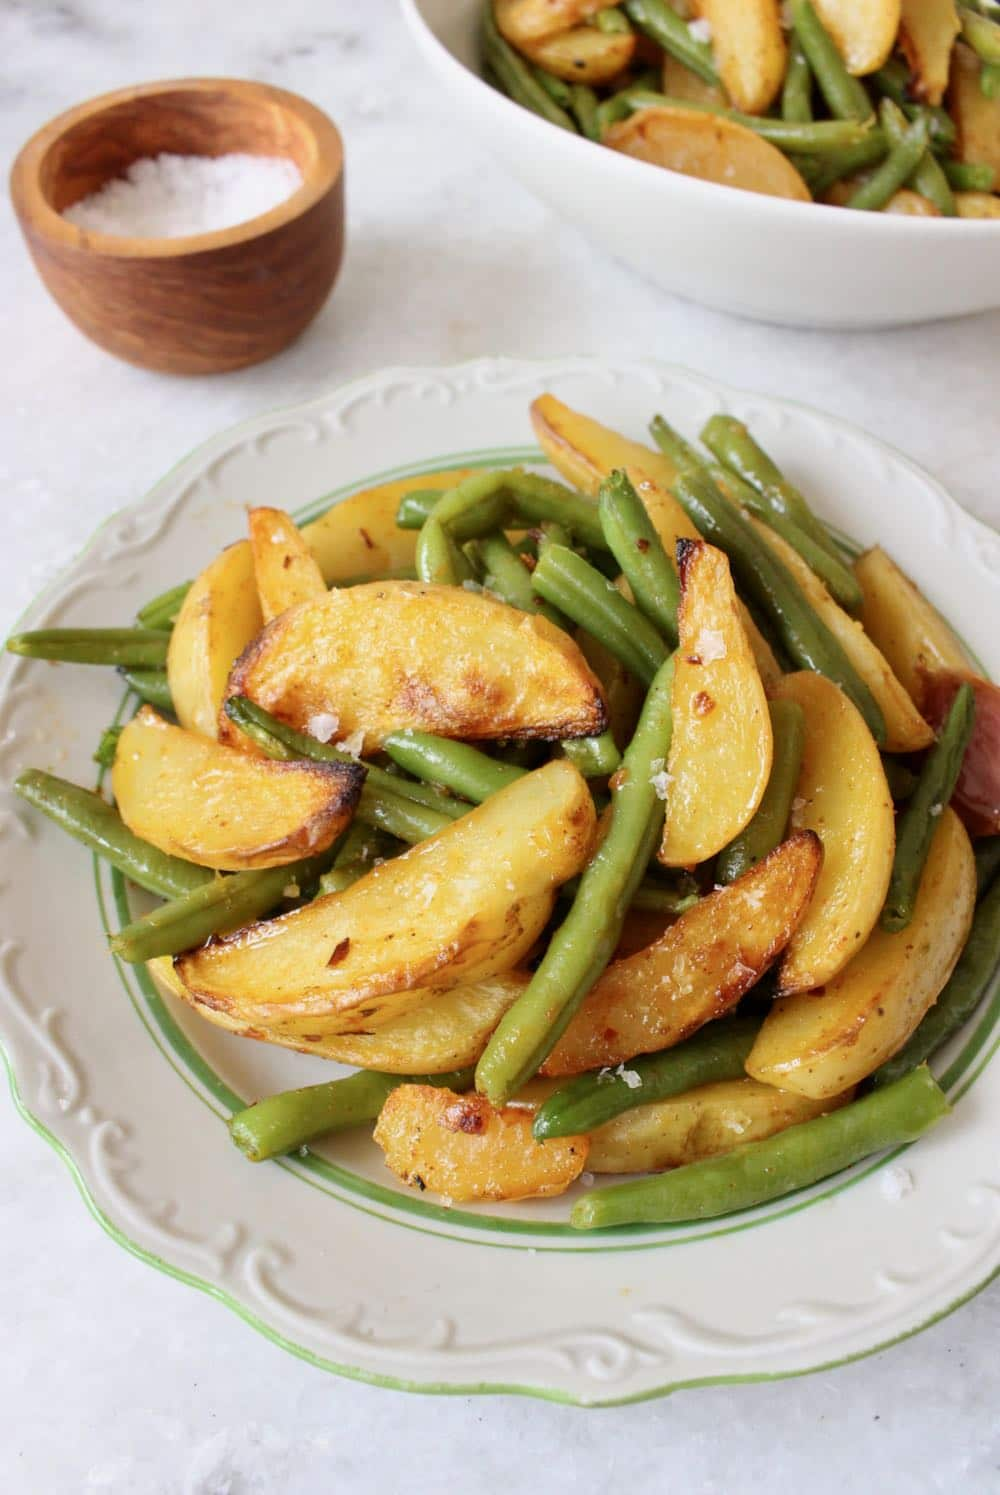 Vegan Roasted potatoes and green beans